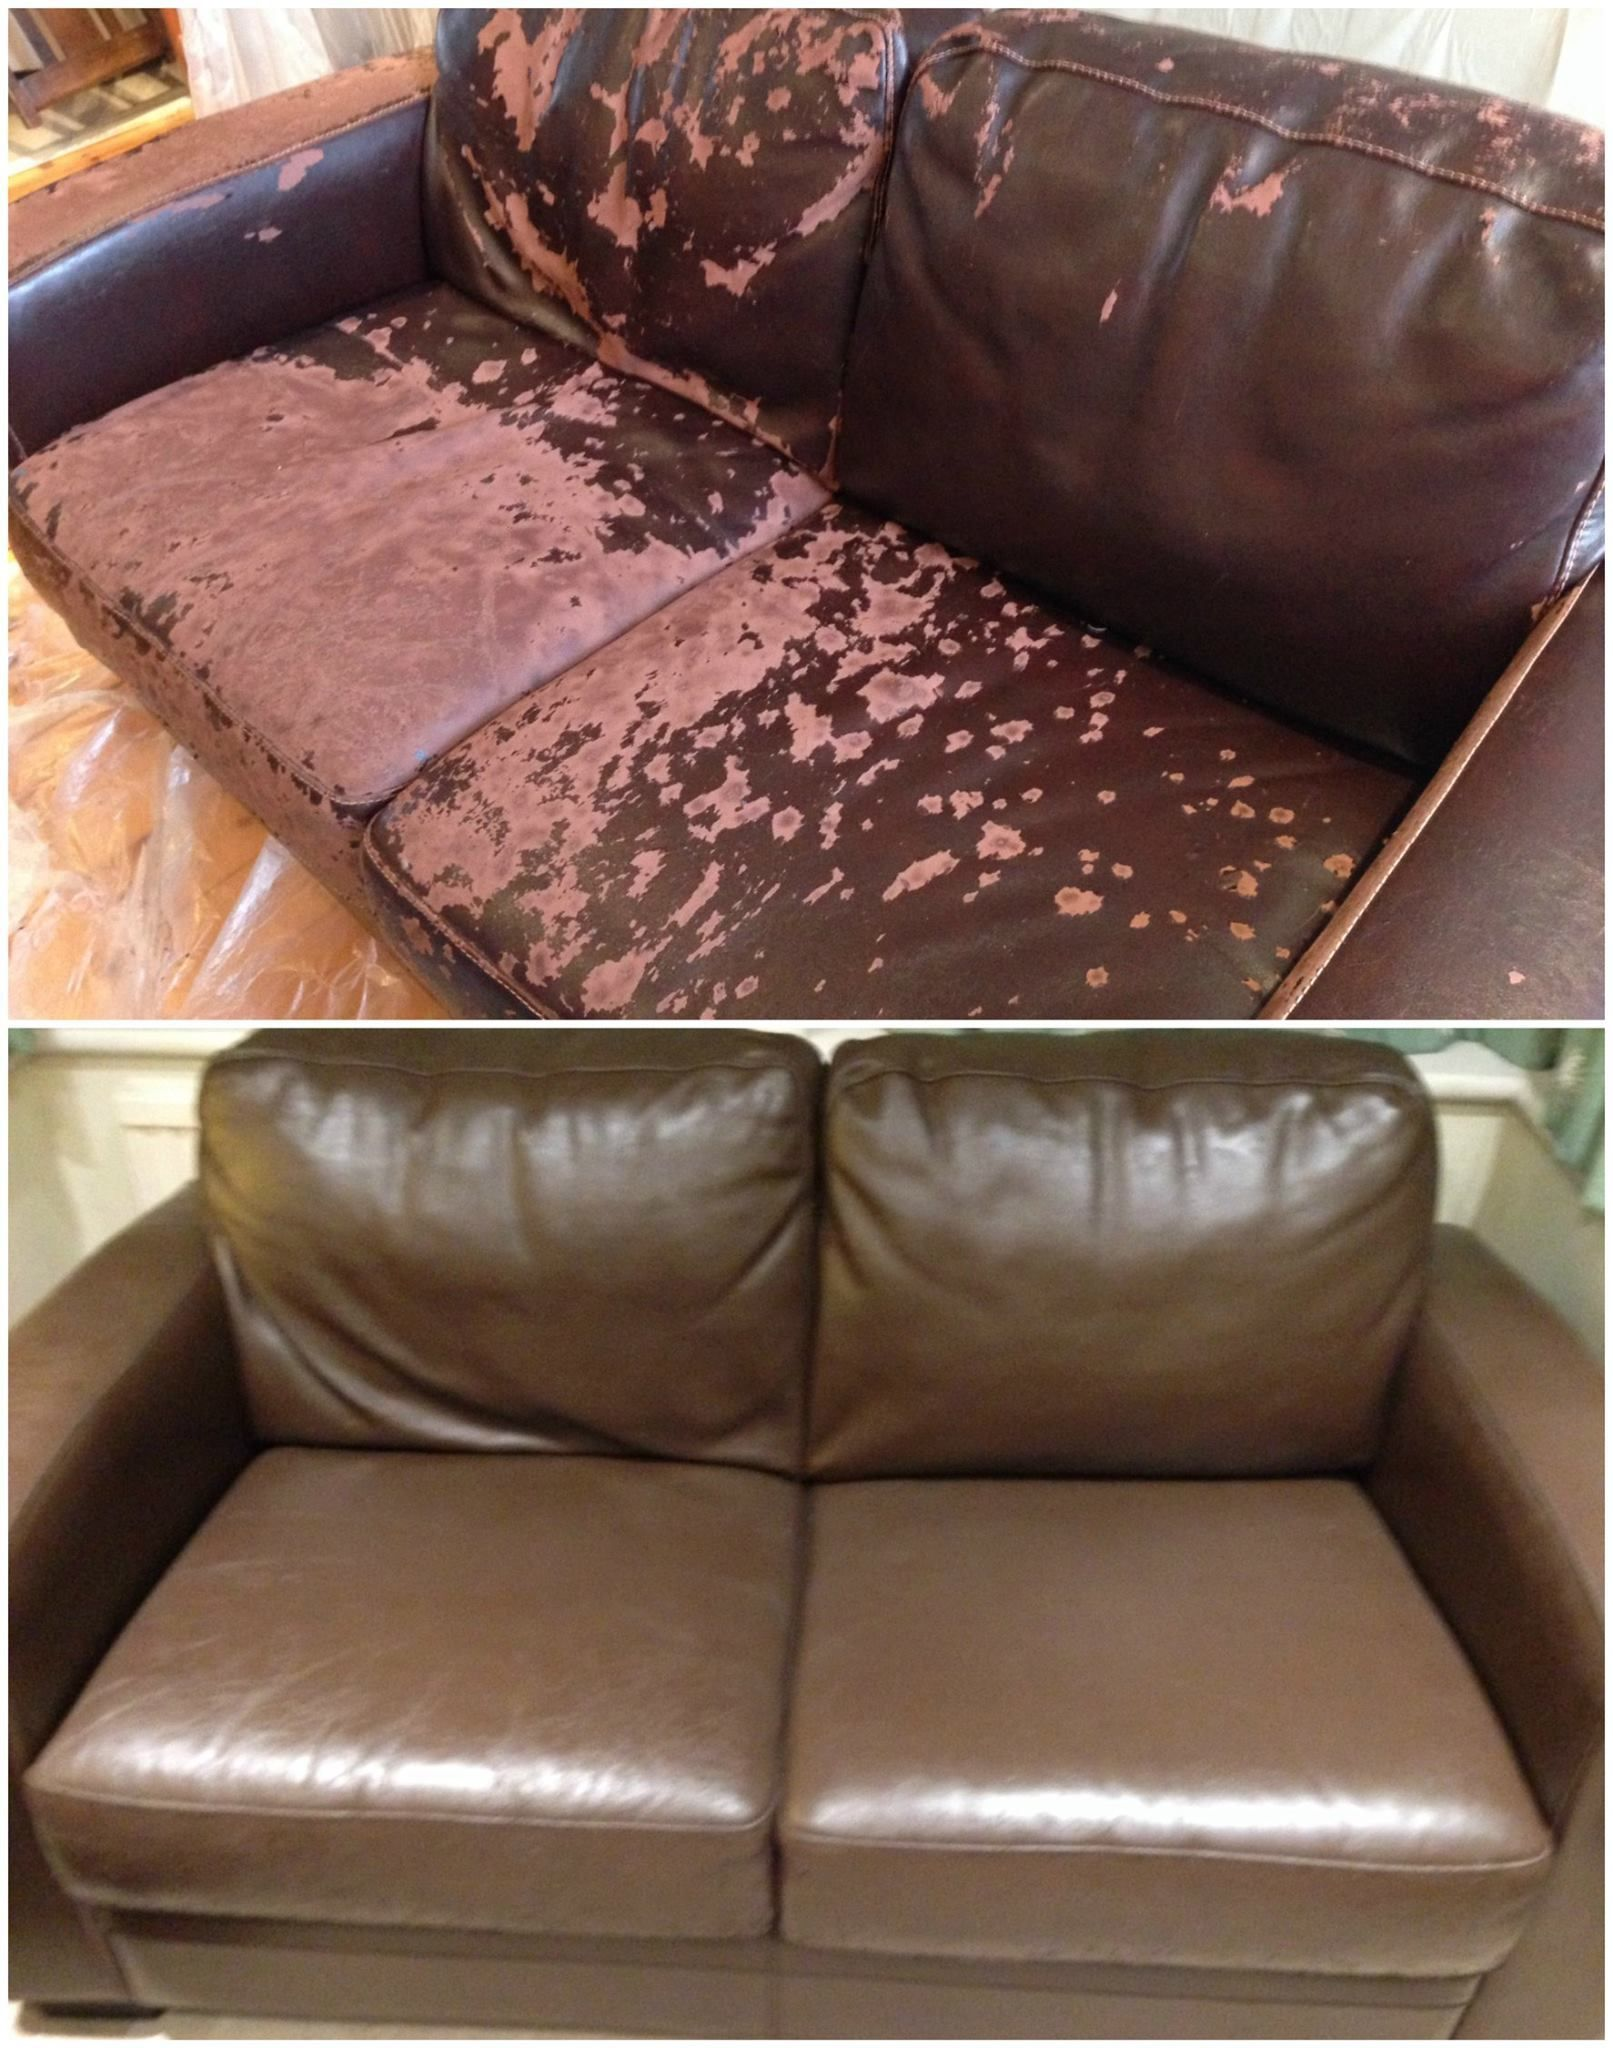 While Looking For A New Sofa Amanda Realised That Although The Leather Was Damaged The Frames And Cushio Leather Couch Fix Couch Repair Leather Couch Repair